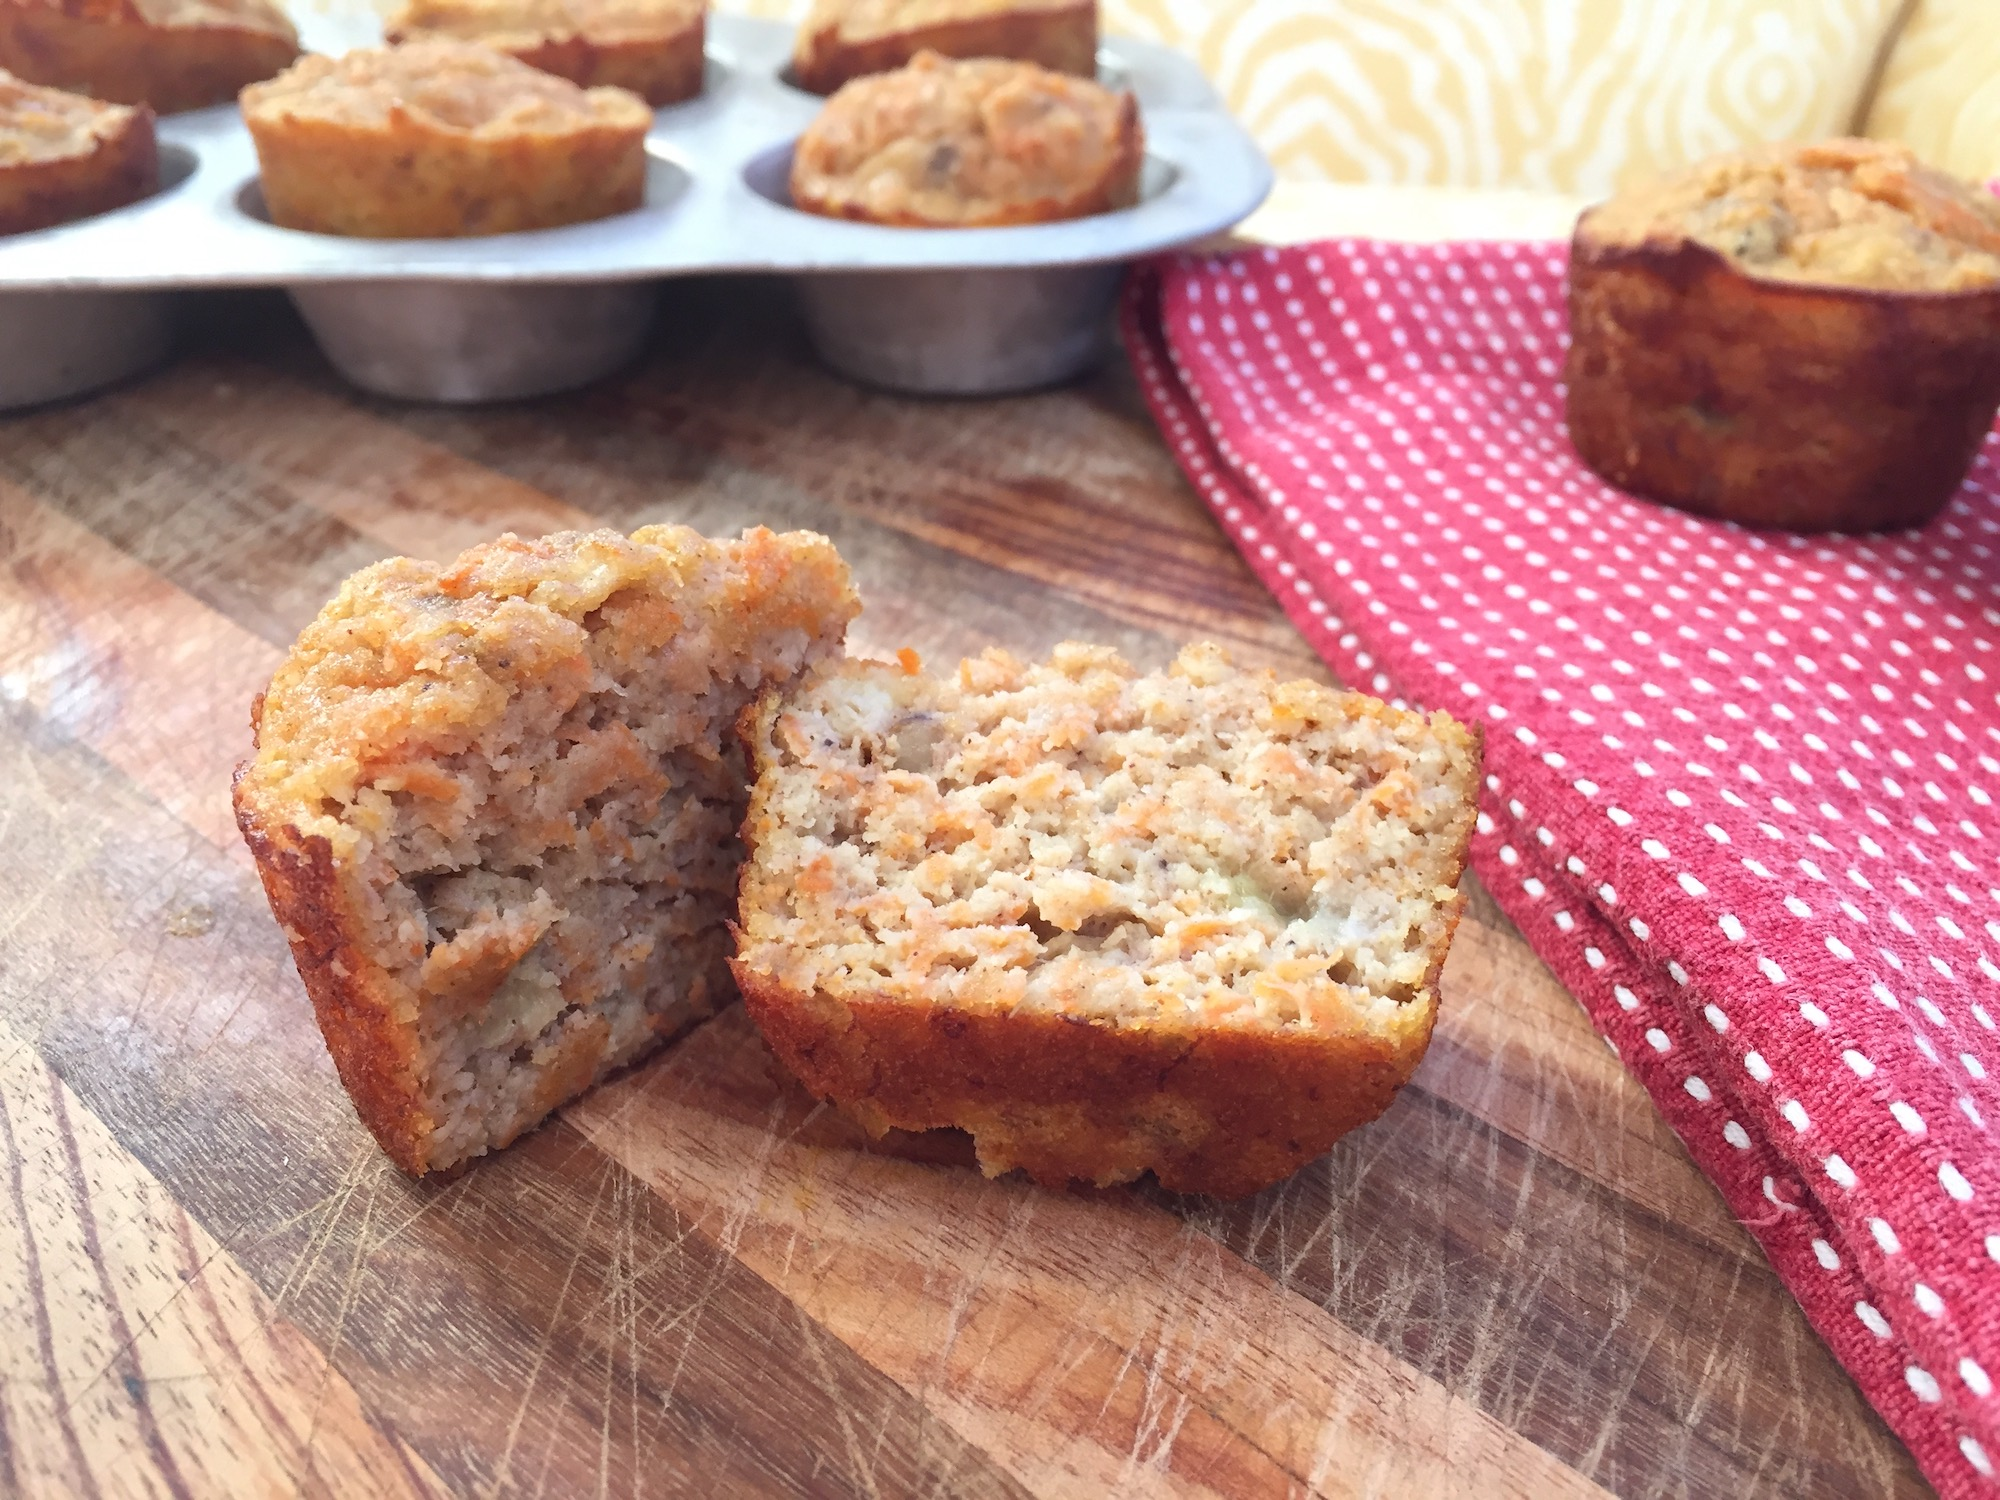 Paleo Banana Carrot Breakfast Muffins